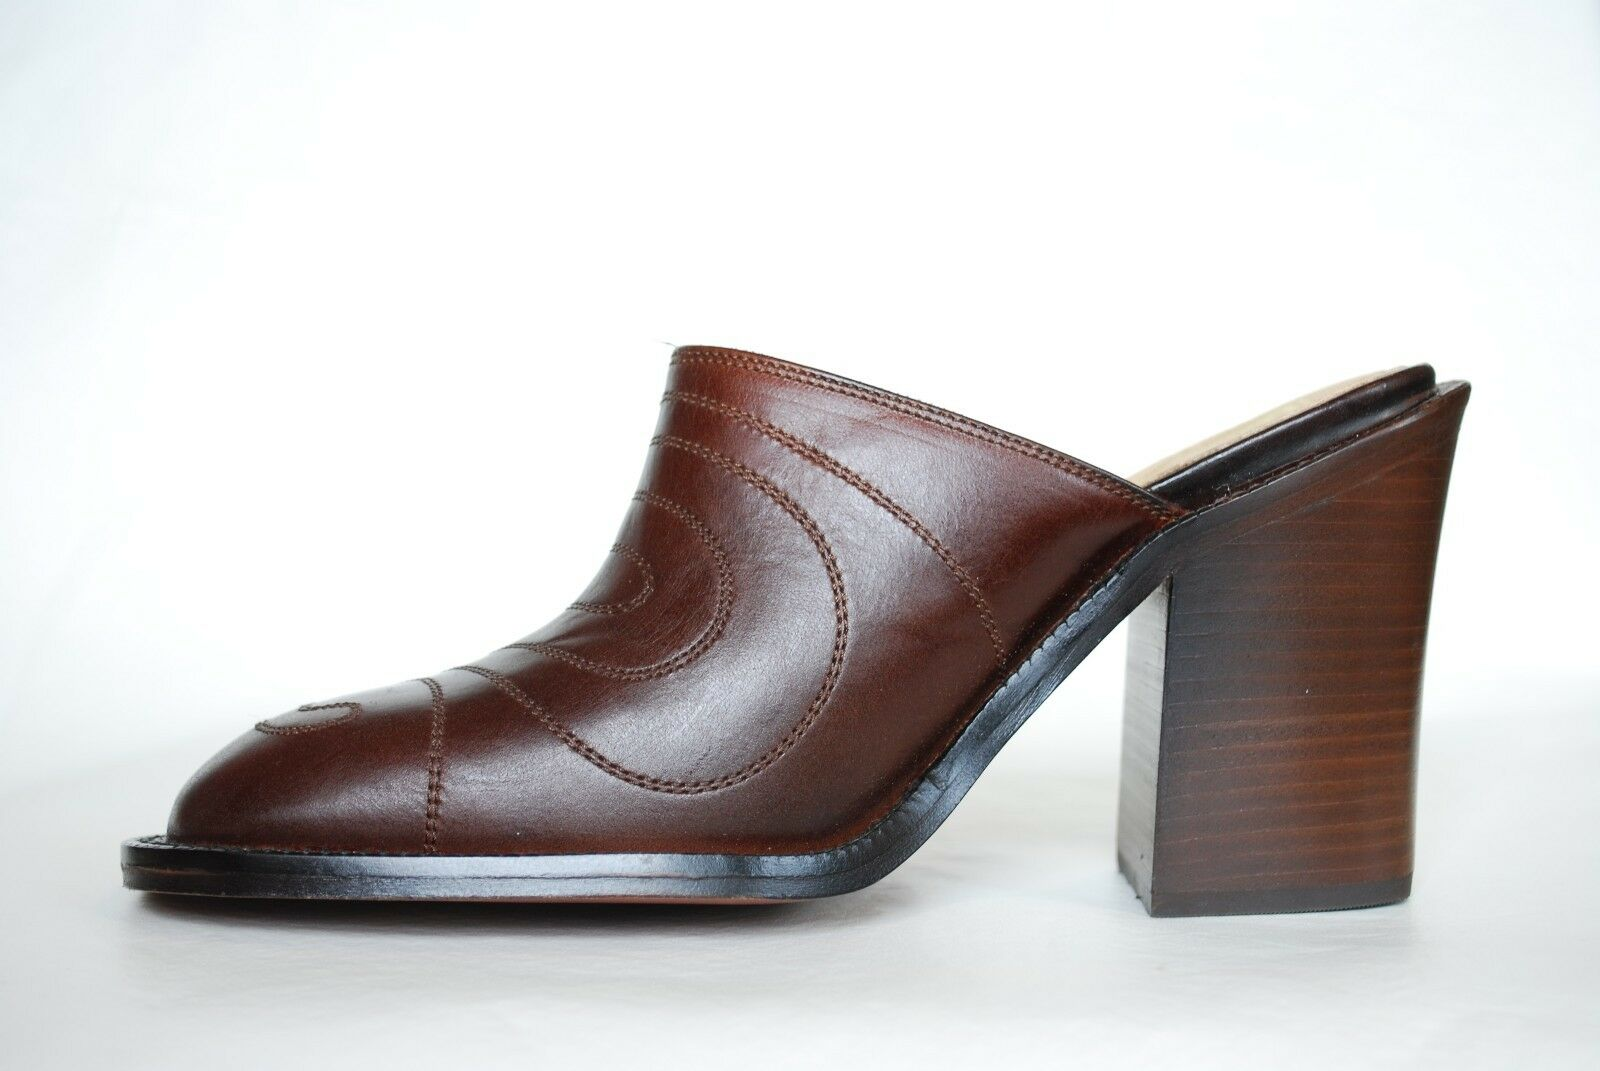 FRYE New Conrad MULE HEELS NIB Womens Leather Clog shoes Size 8 Brown